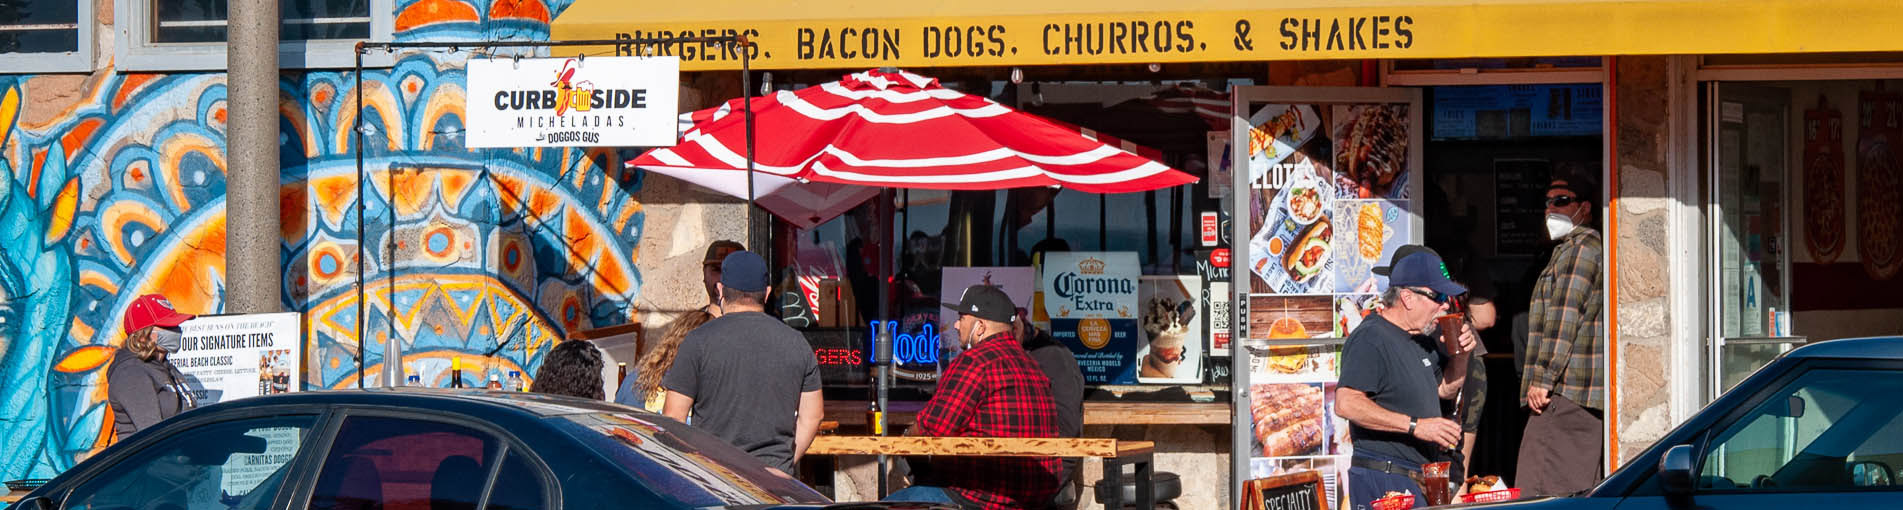 Imperial Beach Burgers Bacon Dogs Churros and Shakes